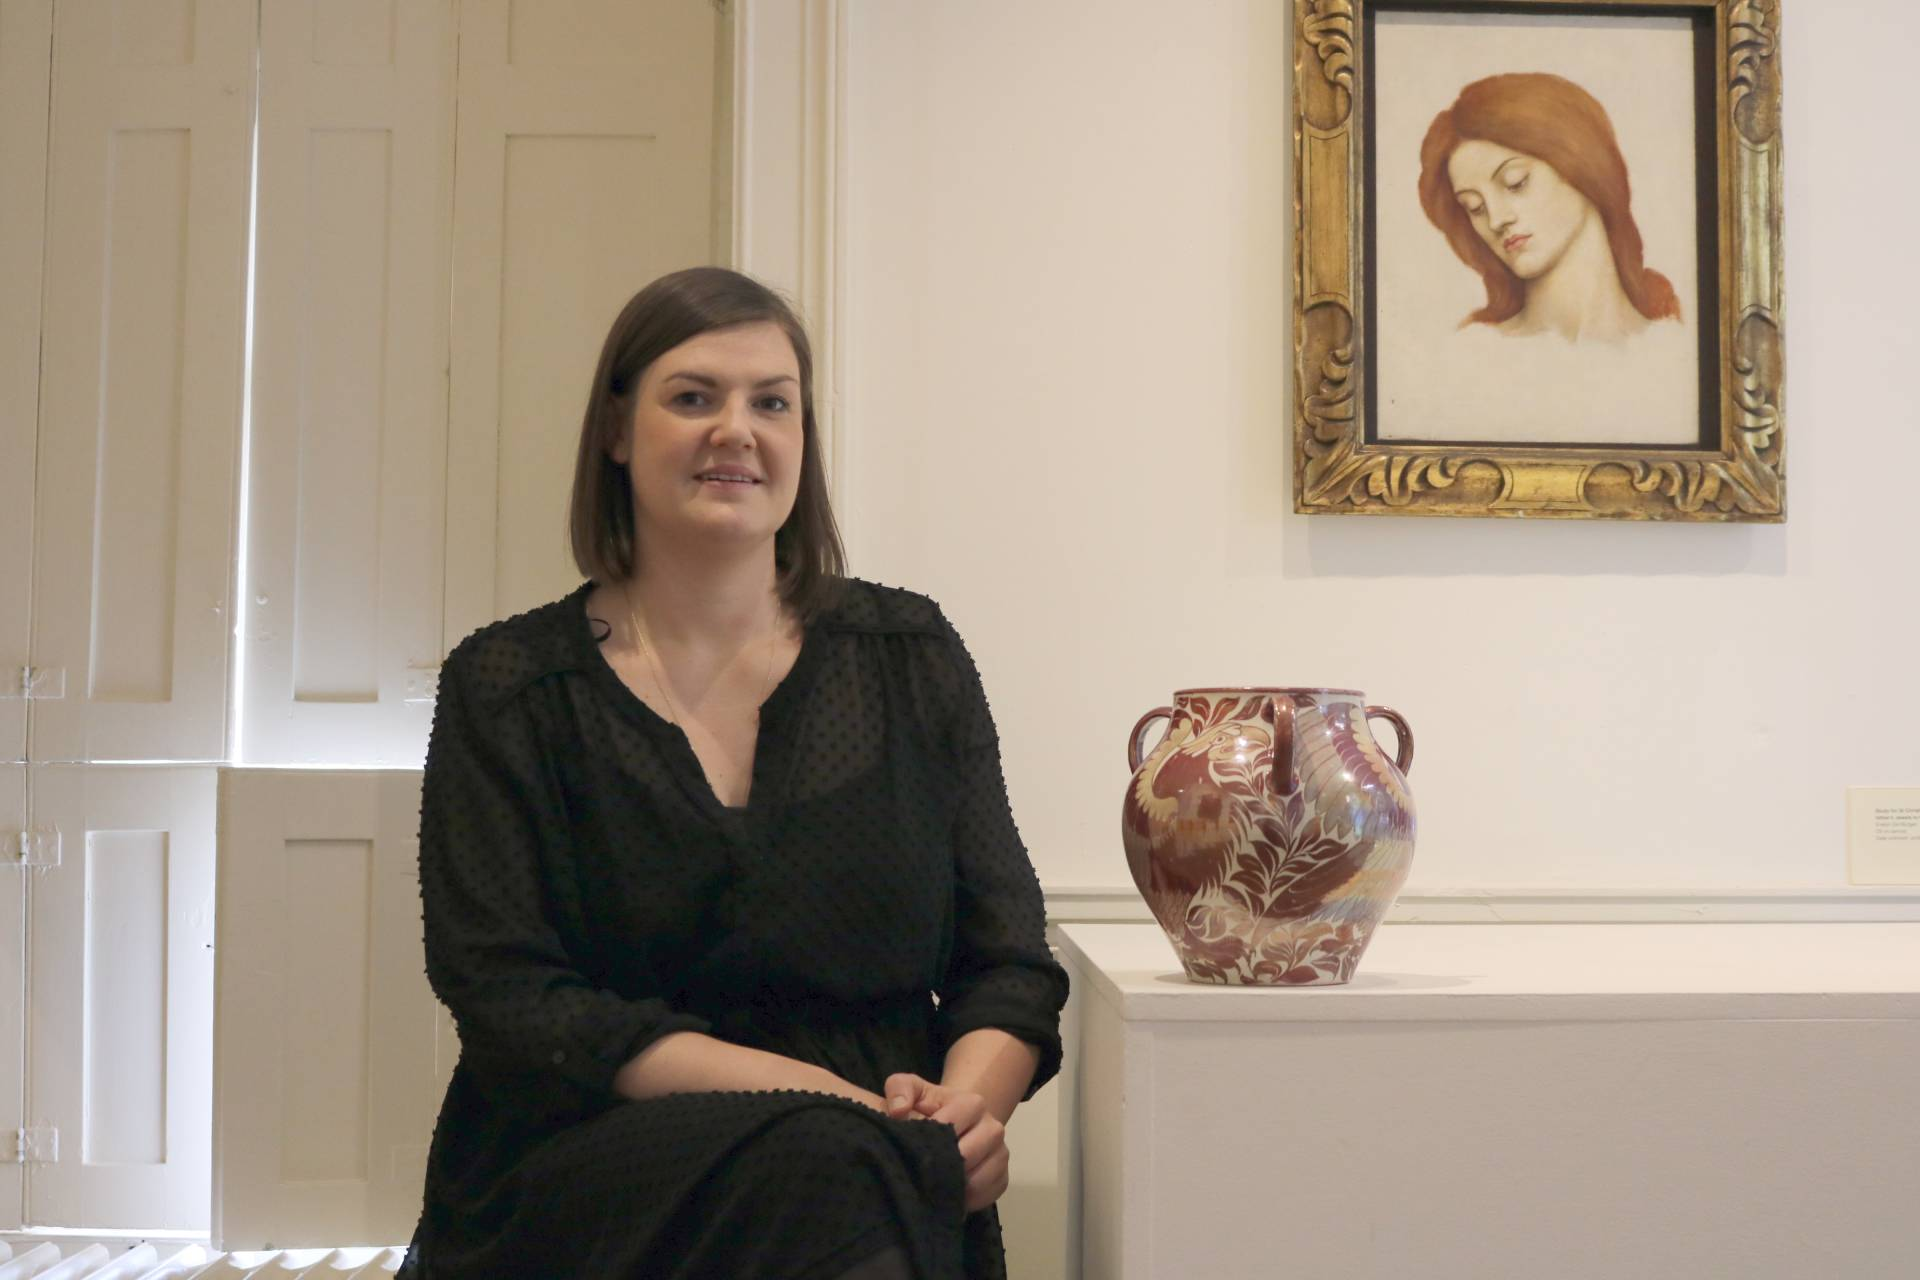 Sarah Hardy stood with the William De Morgan vase at Cannon Hall